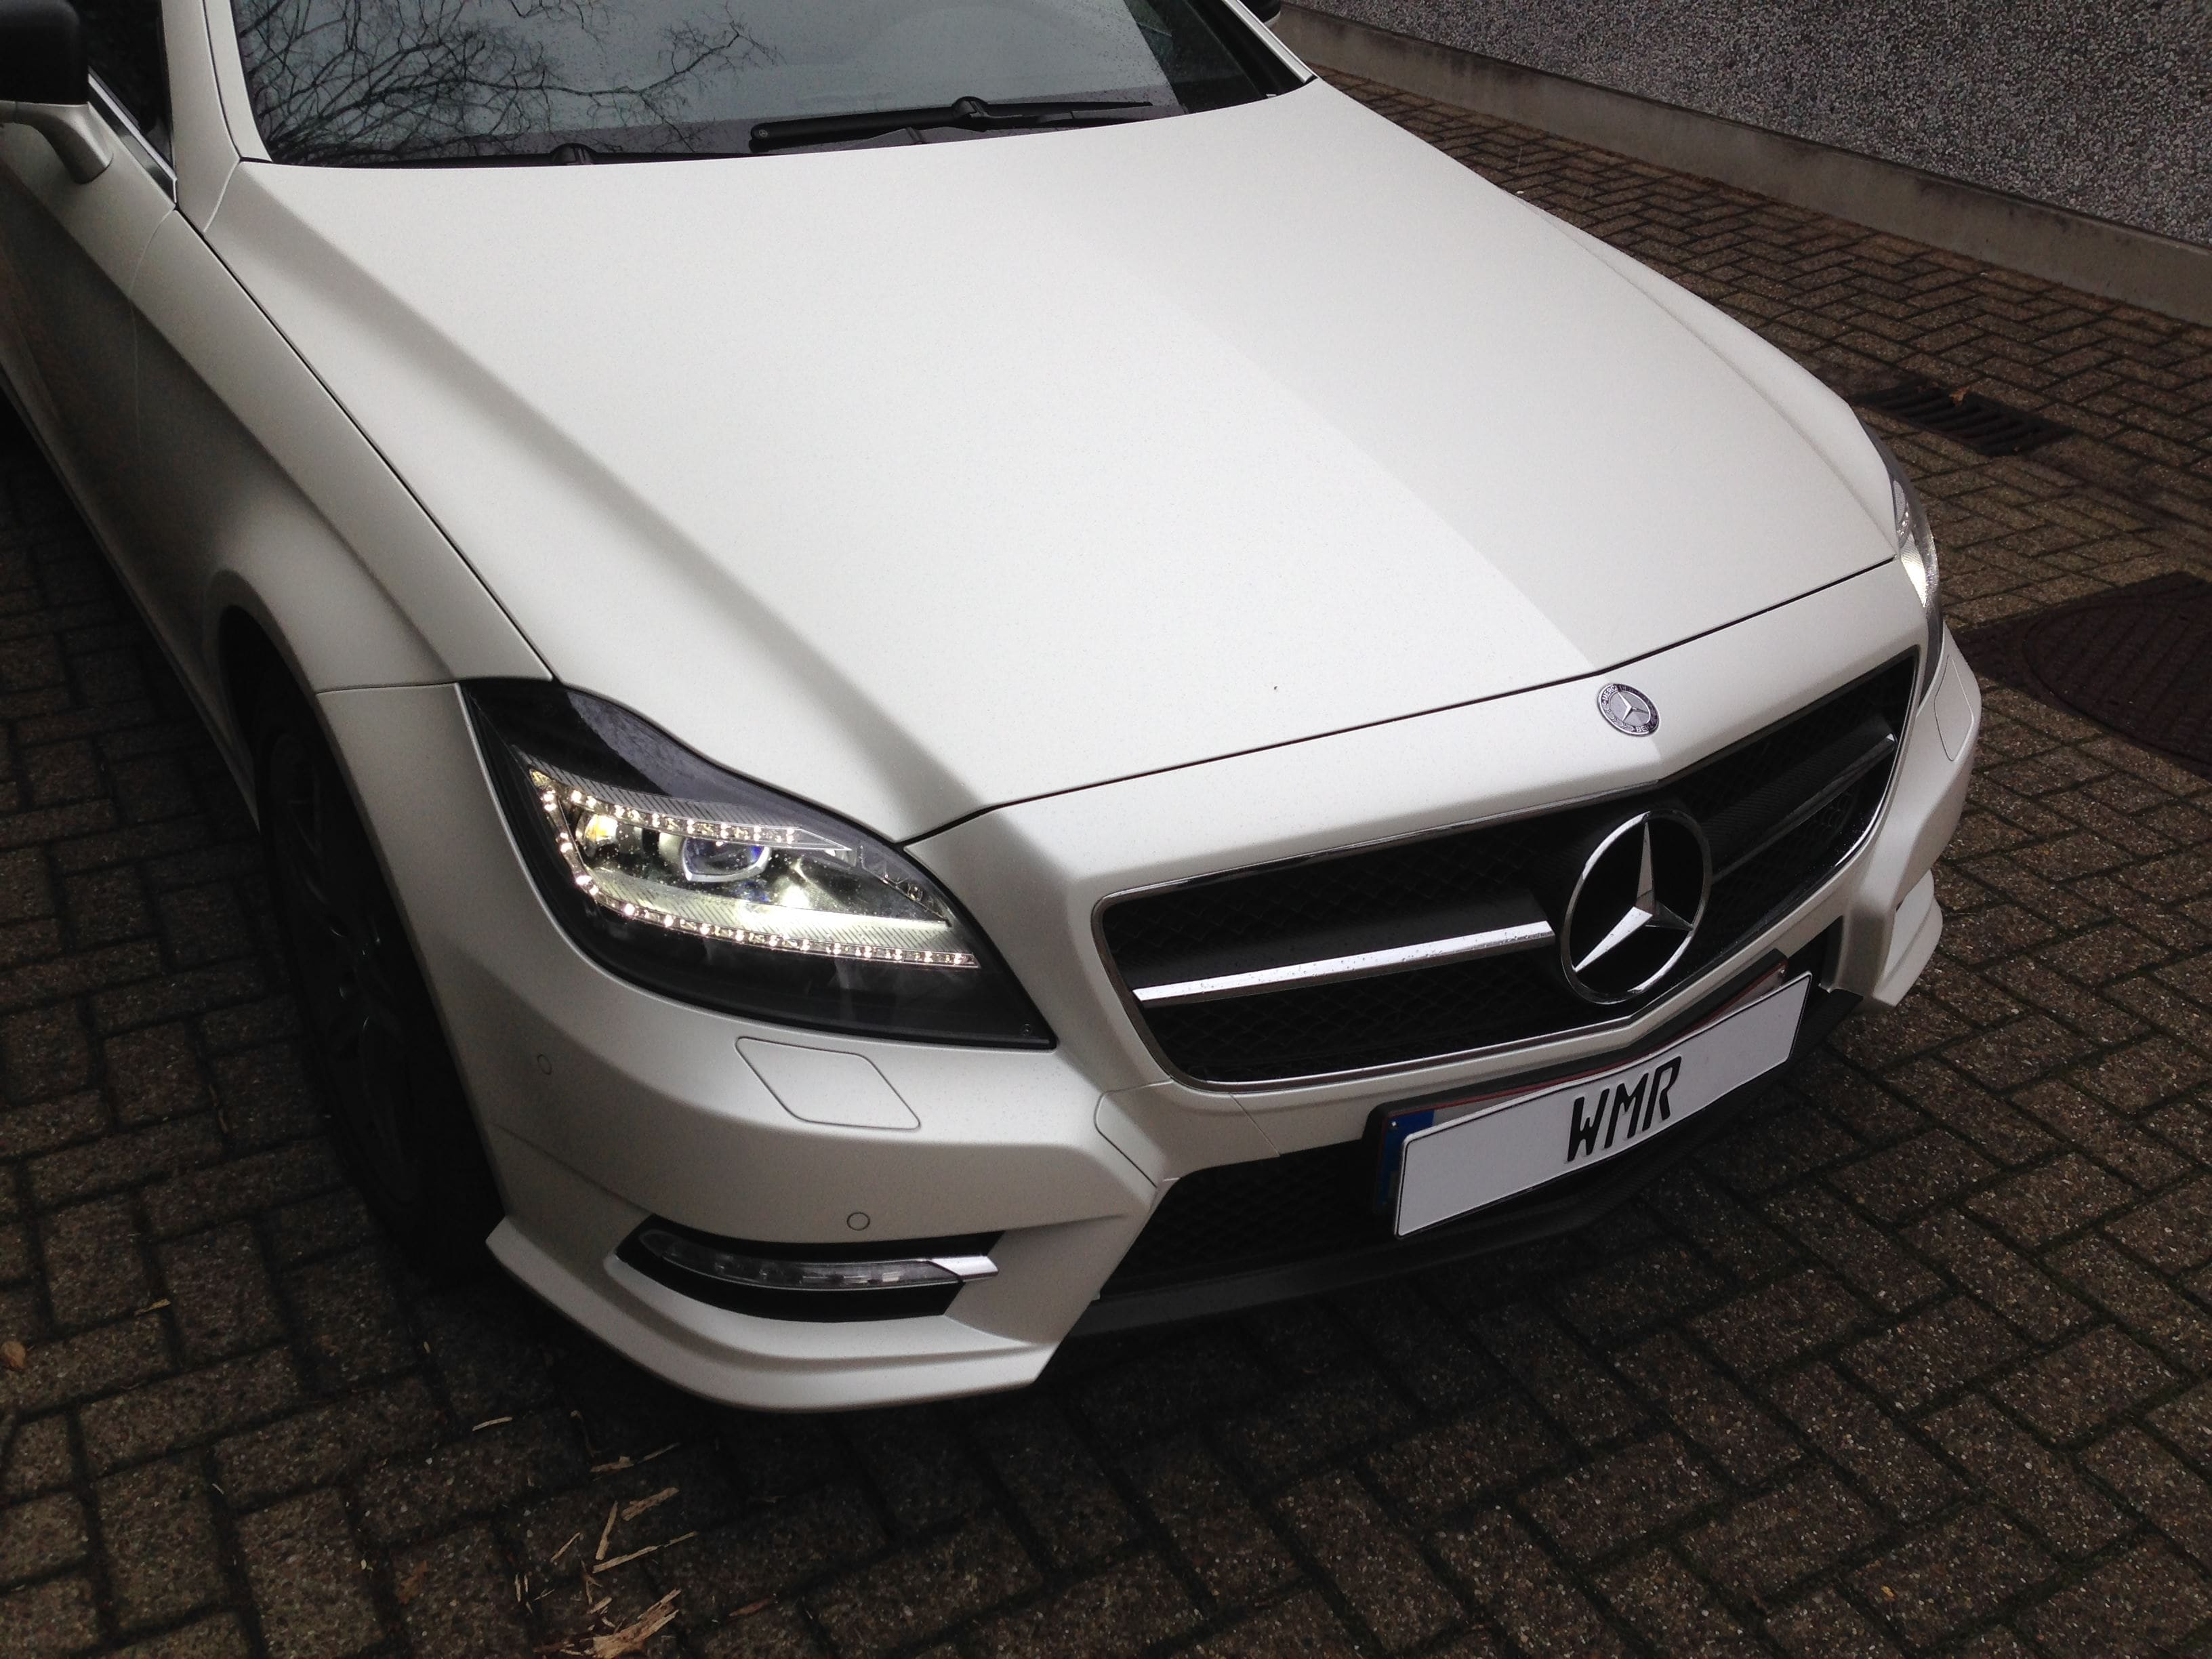 Mercedes CLS met White Satin Pearl Wrap, Carwrapping door Wrapmyride.nu Foto-nr:6205, ©2020